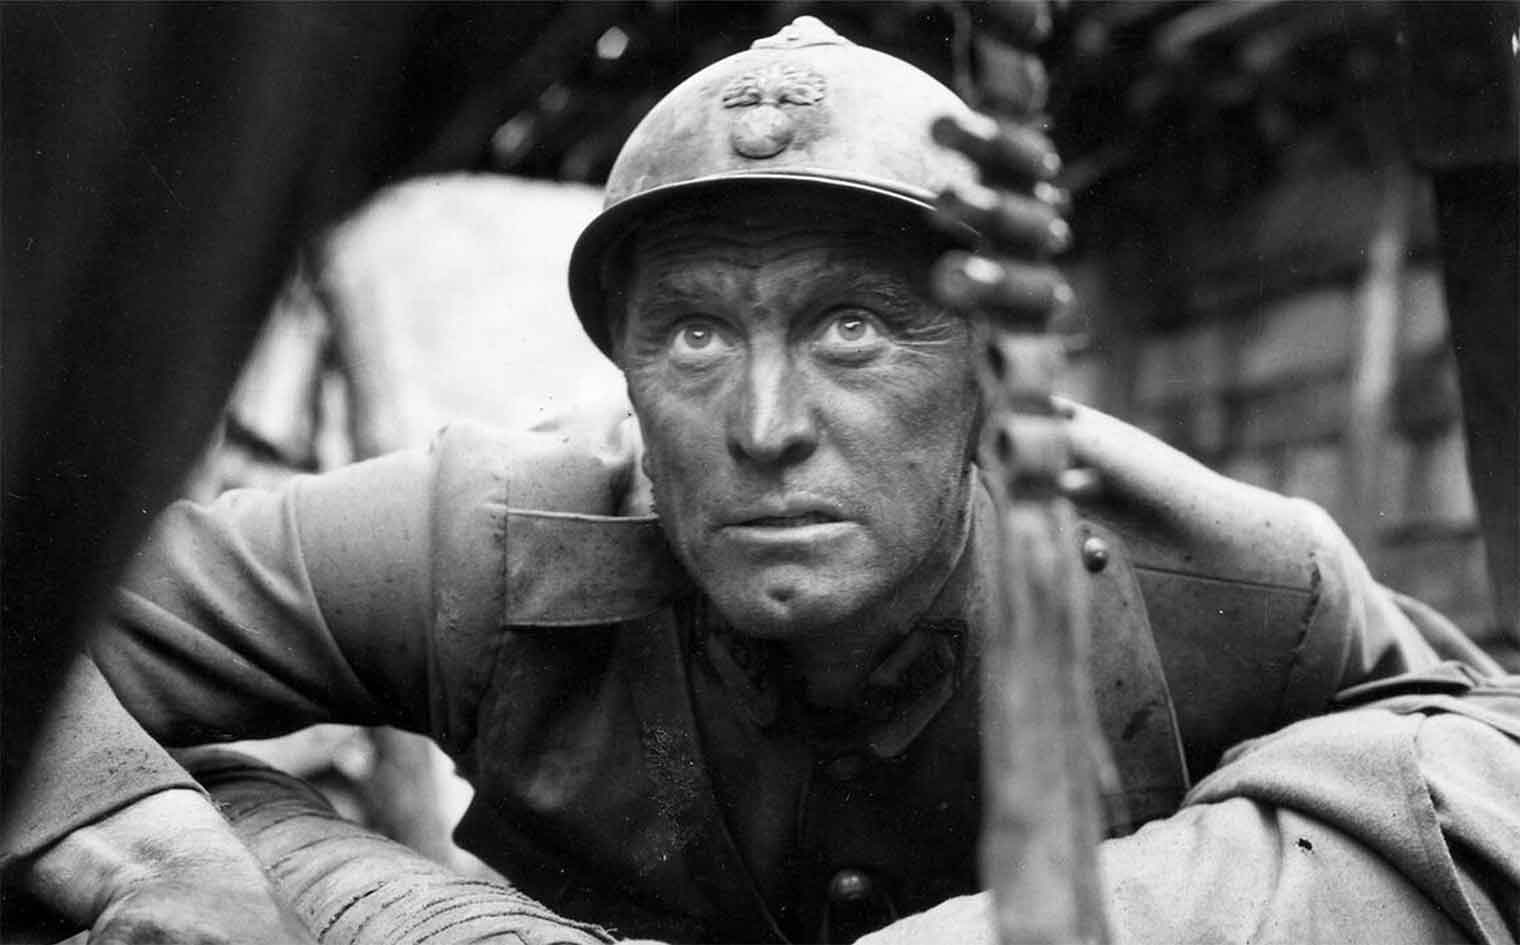 PATHS OF GLORY & THE KILLING